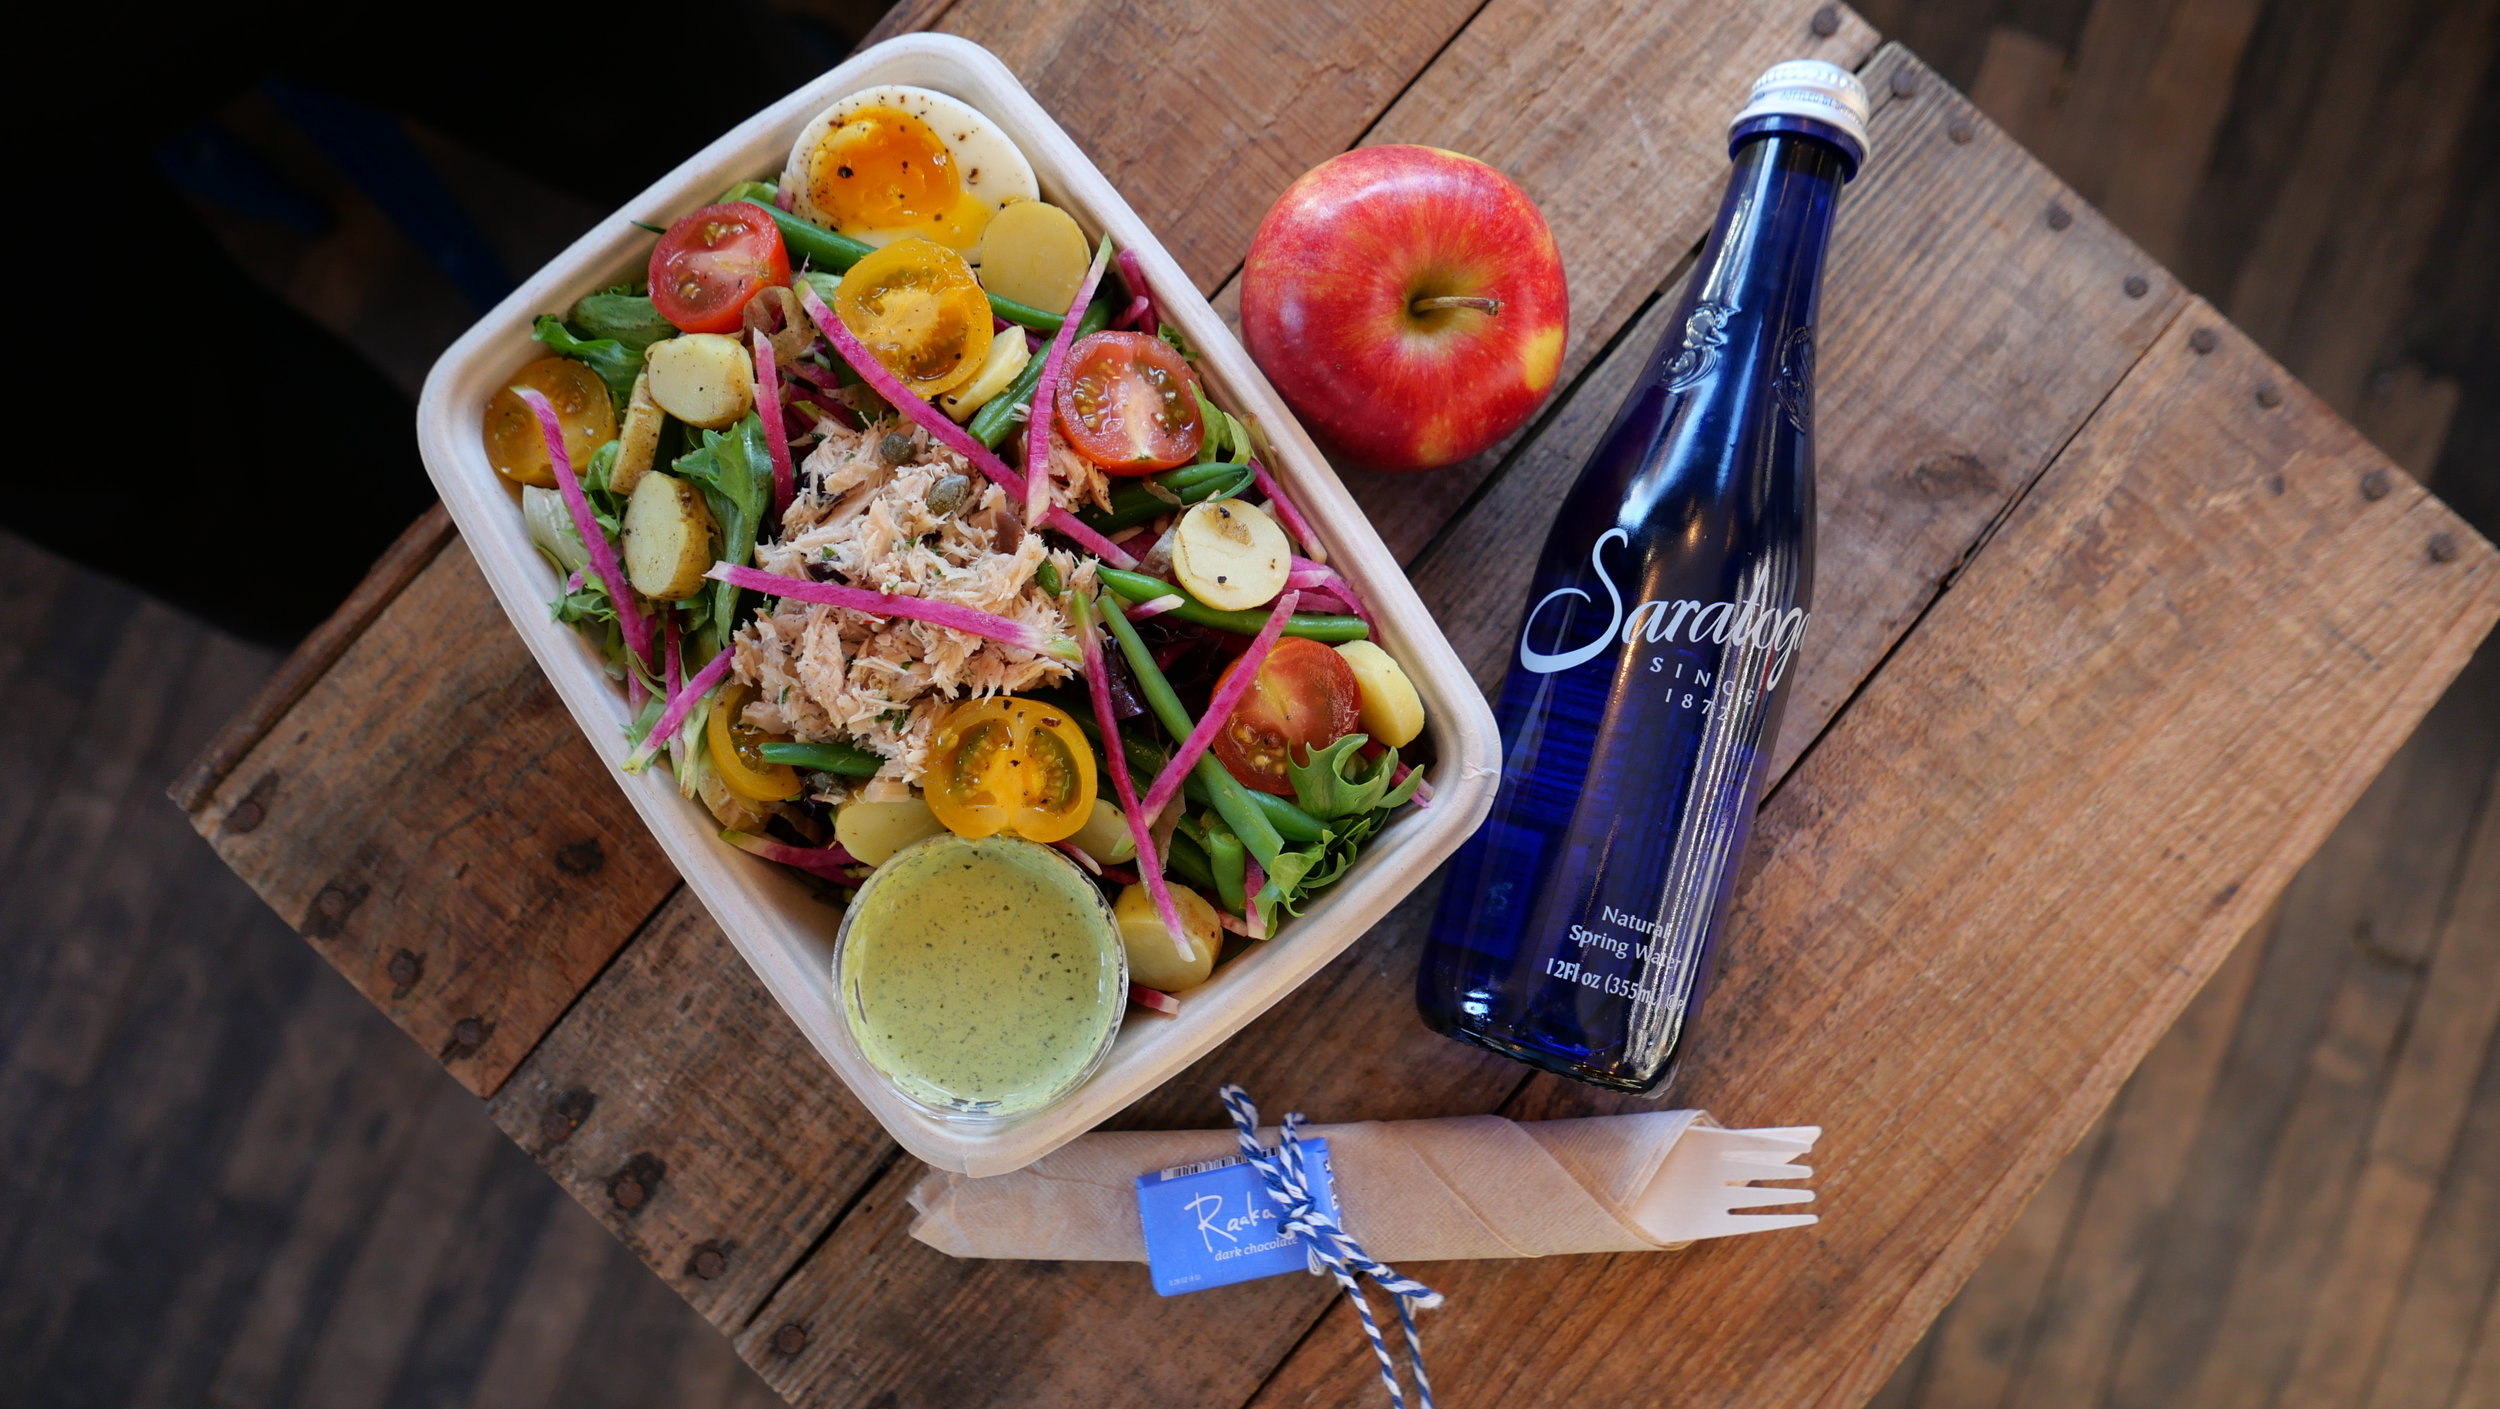 The lunch box shown with niçoise salad